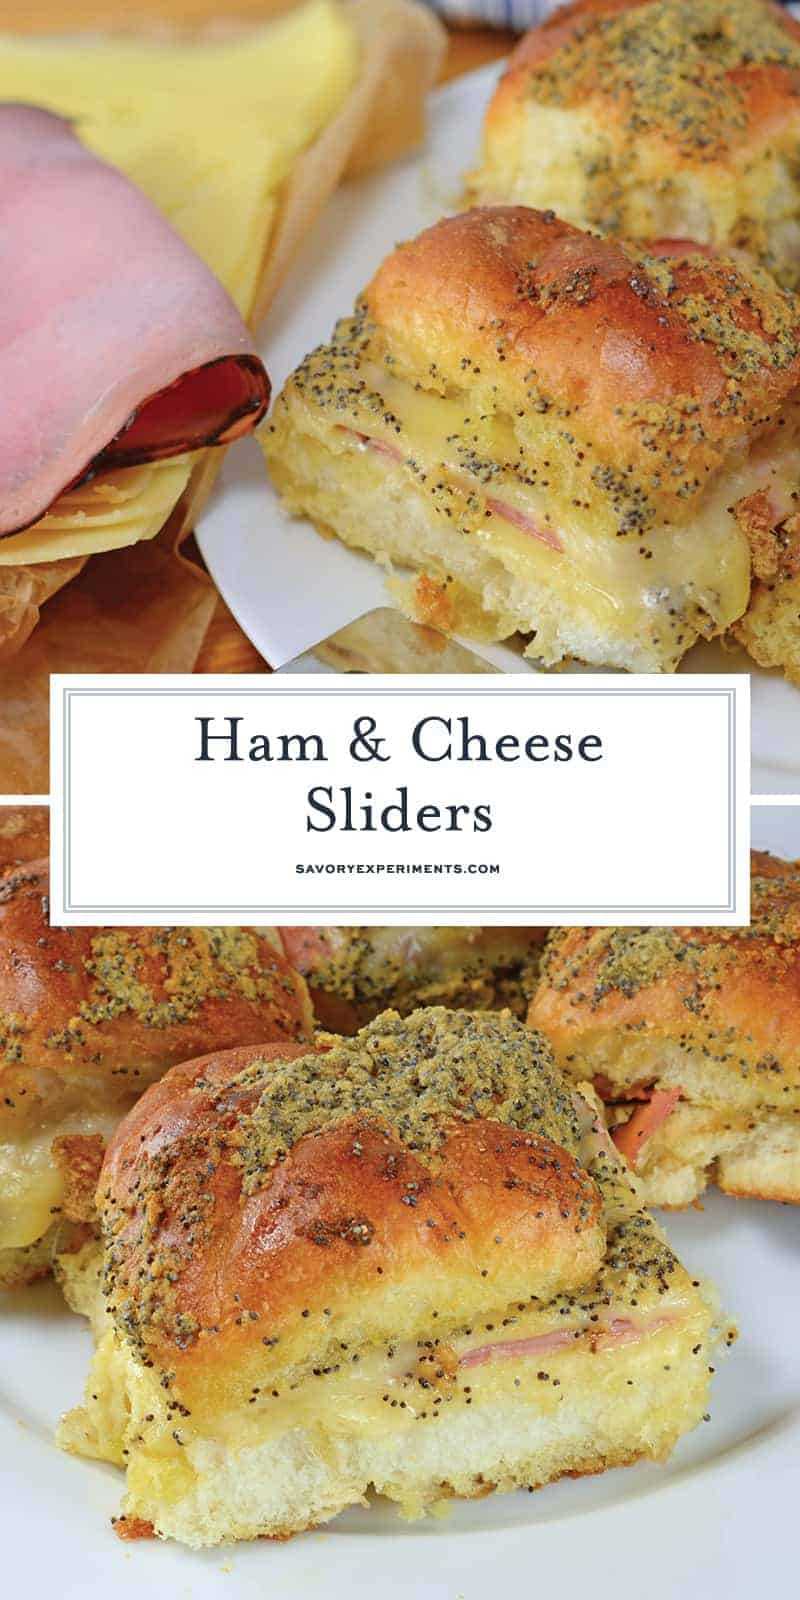 These Ham and Cheese sliders are made with delicious honey ham and Swiss cheese on Hawaiian Rolls. So good there'll never be any leftovers! #hamandcheesesliders #hamsliders #hawaiianrollsliders www.savoryexperiments.com